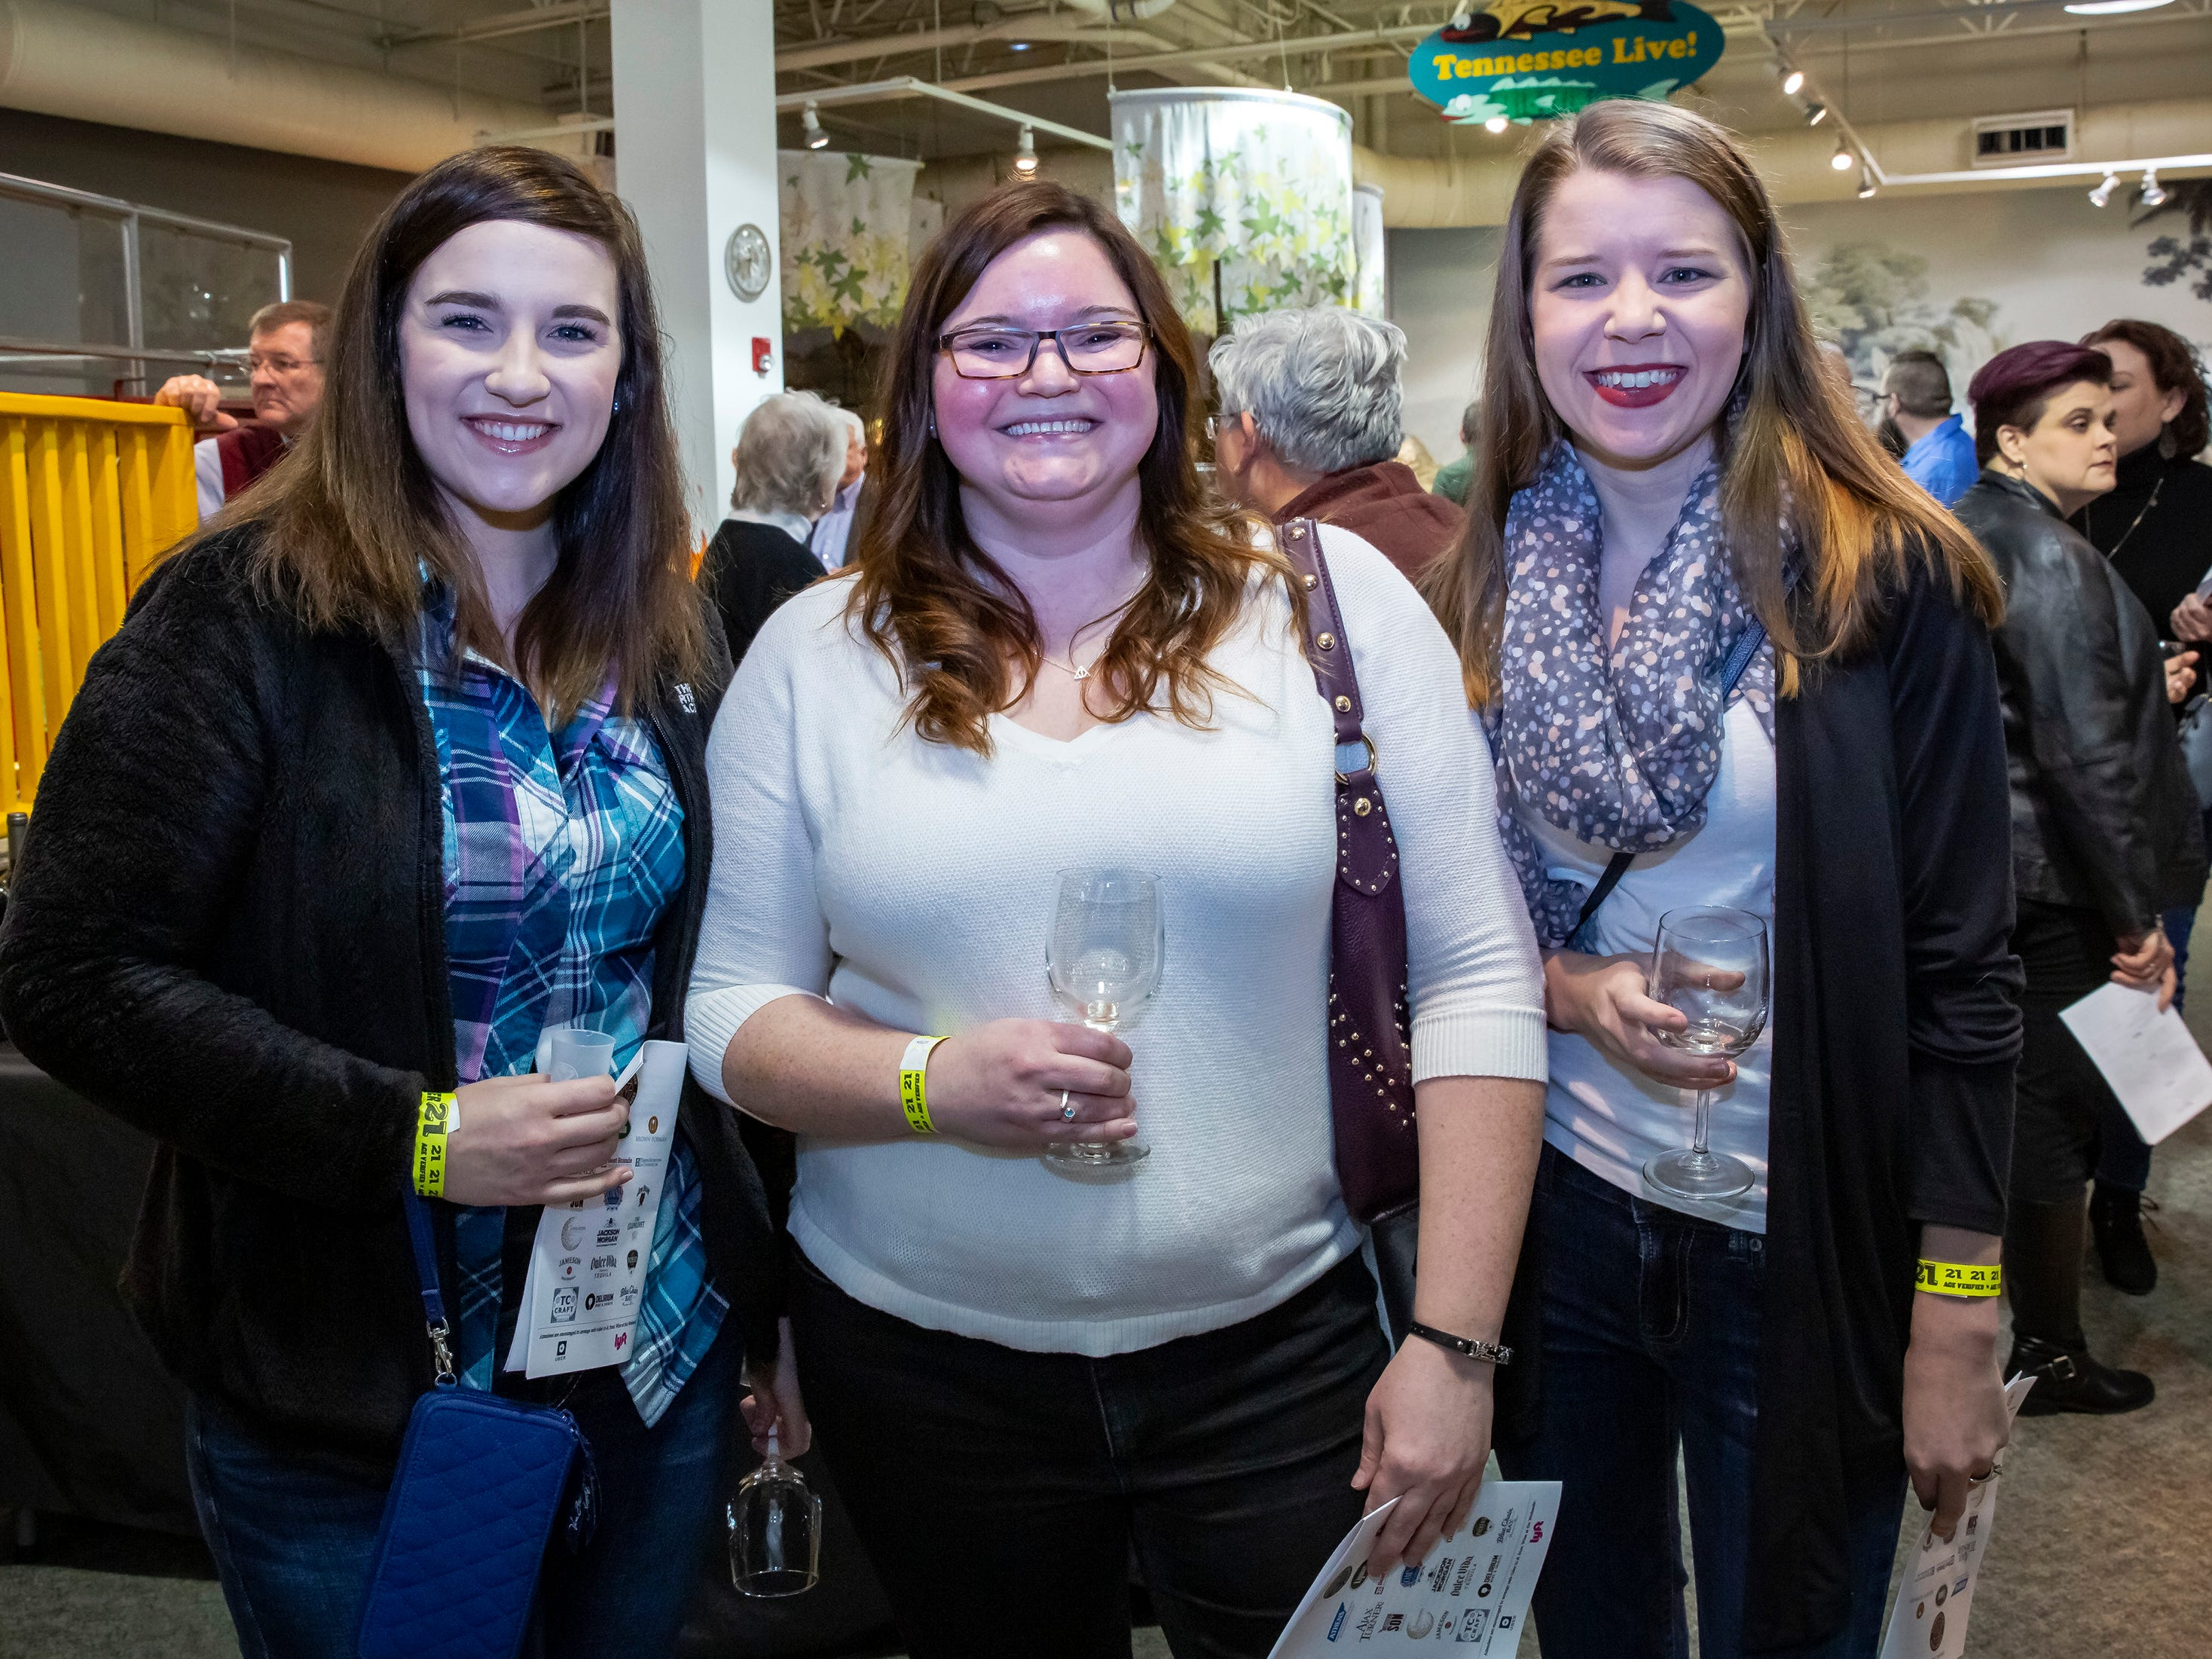 Emily Elliott, Chelsey Cornett and Mellissa Barlar at the 6th annual Wine and Whiskey at the Wetlands event held at the Discovery Center.